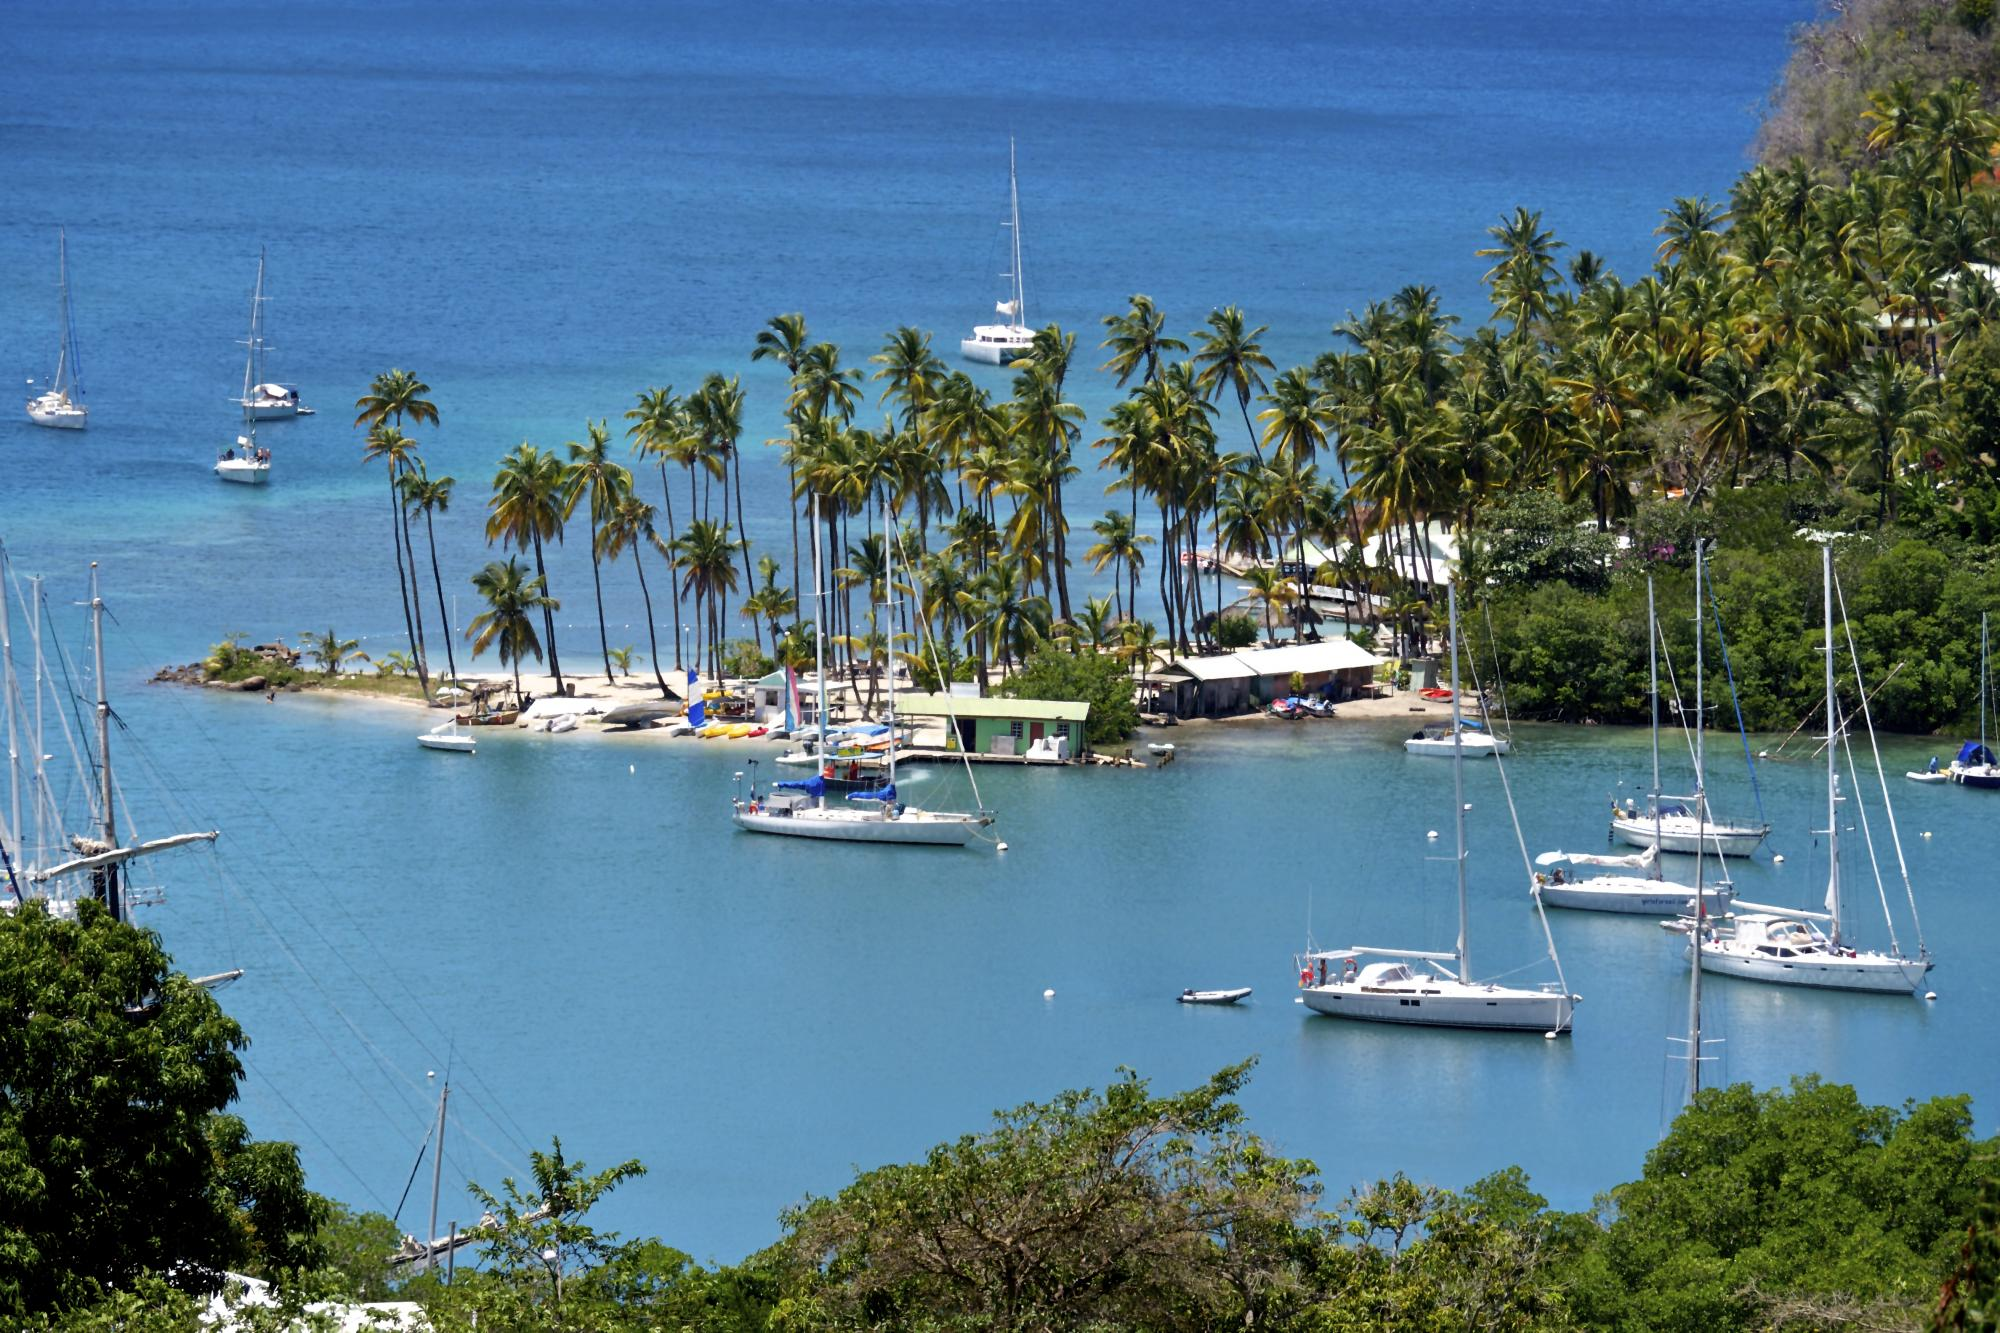 Northern St Lucia: Marigot Bay and Pigeon Island